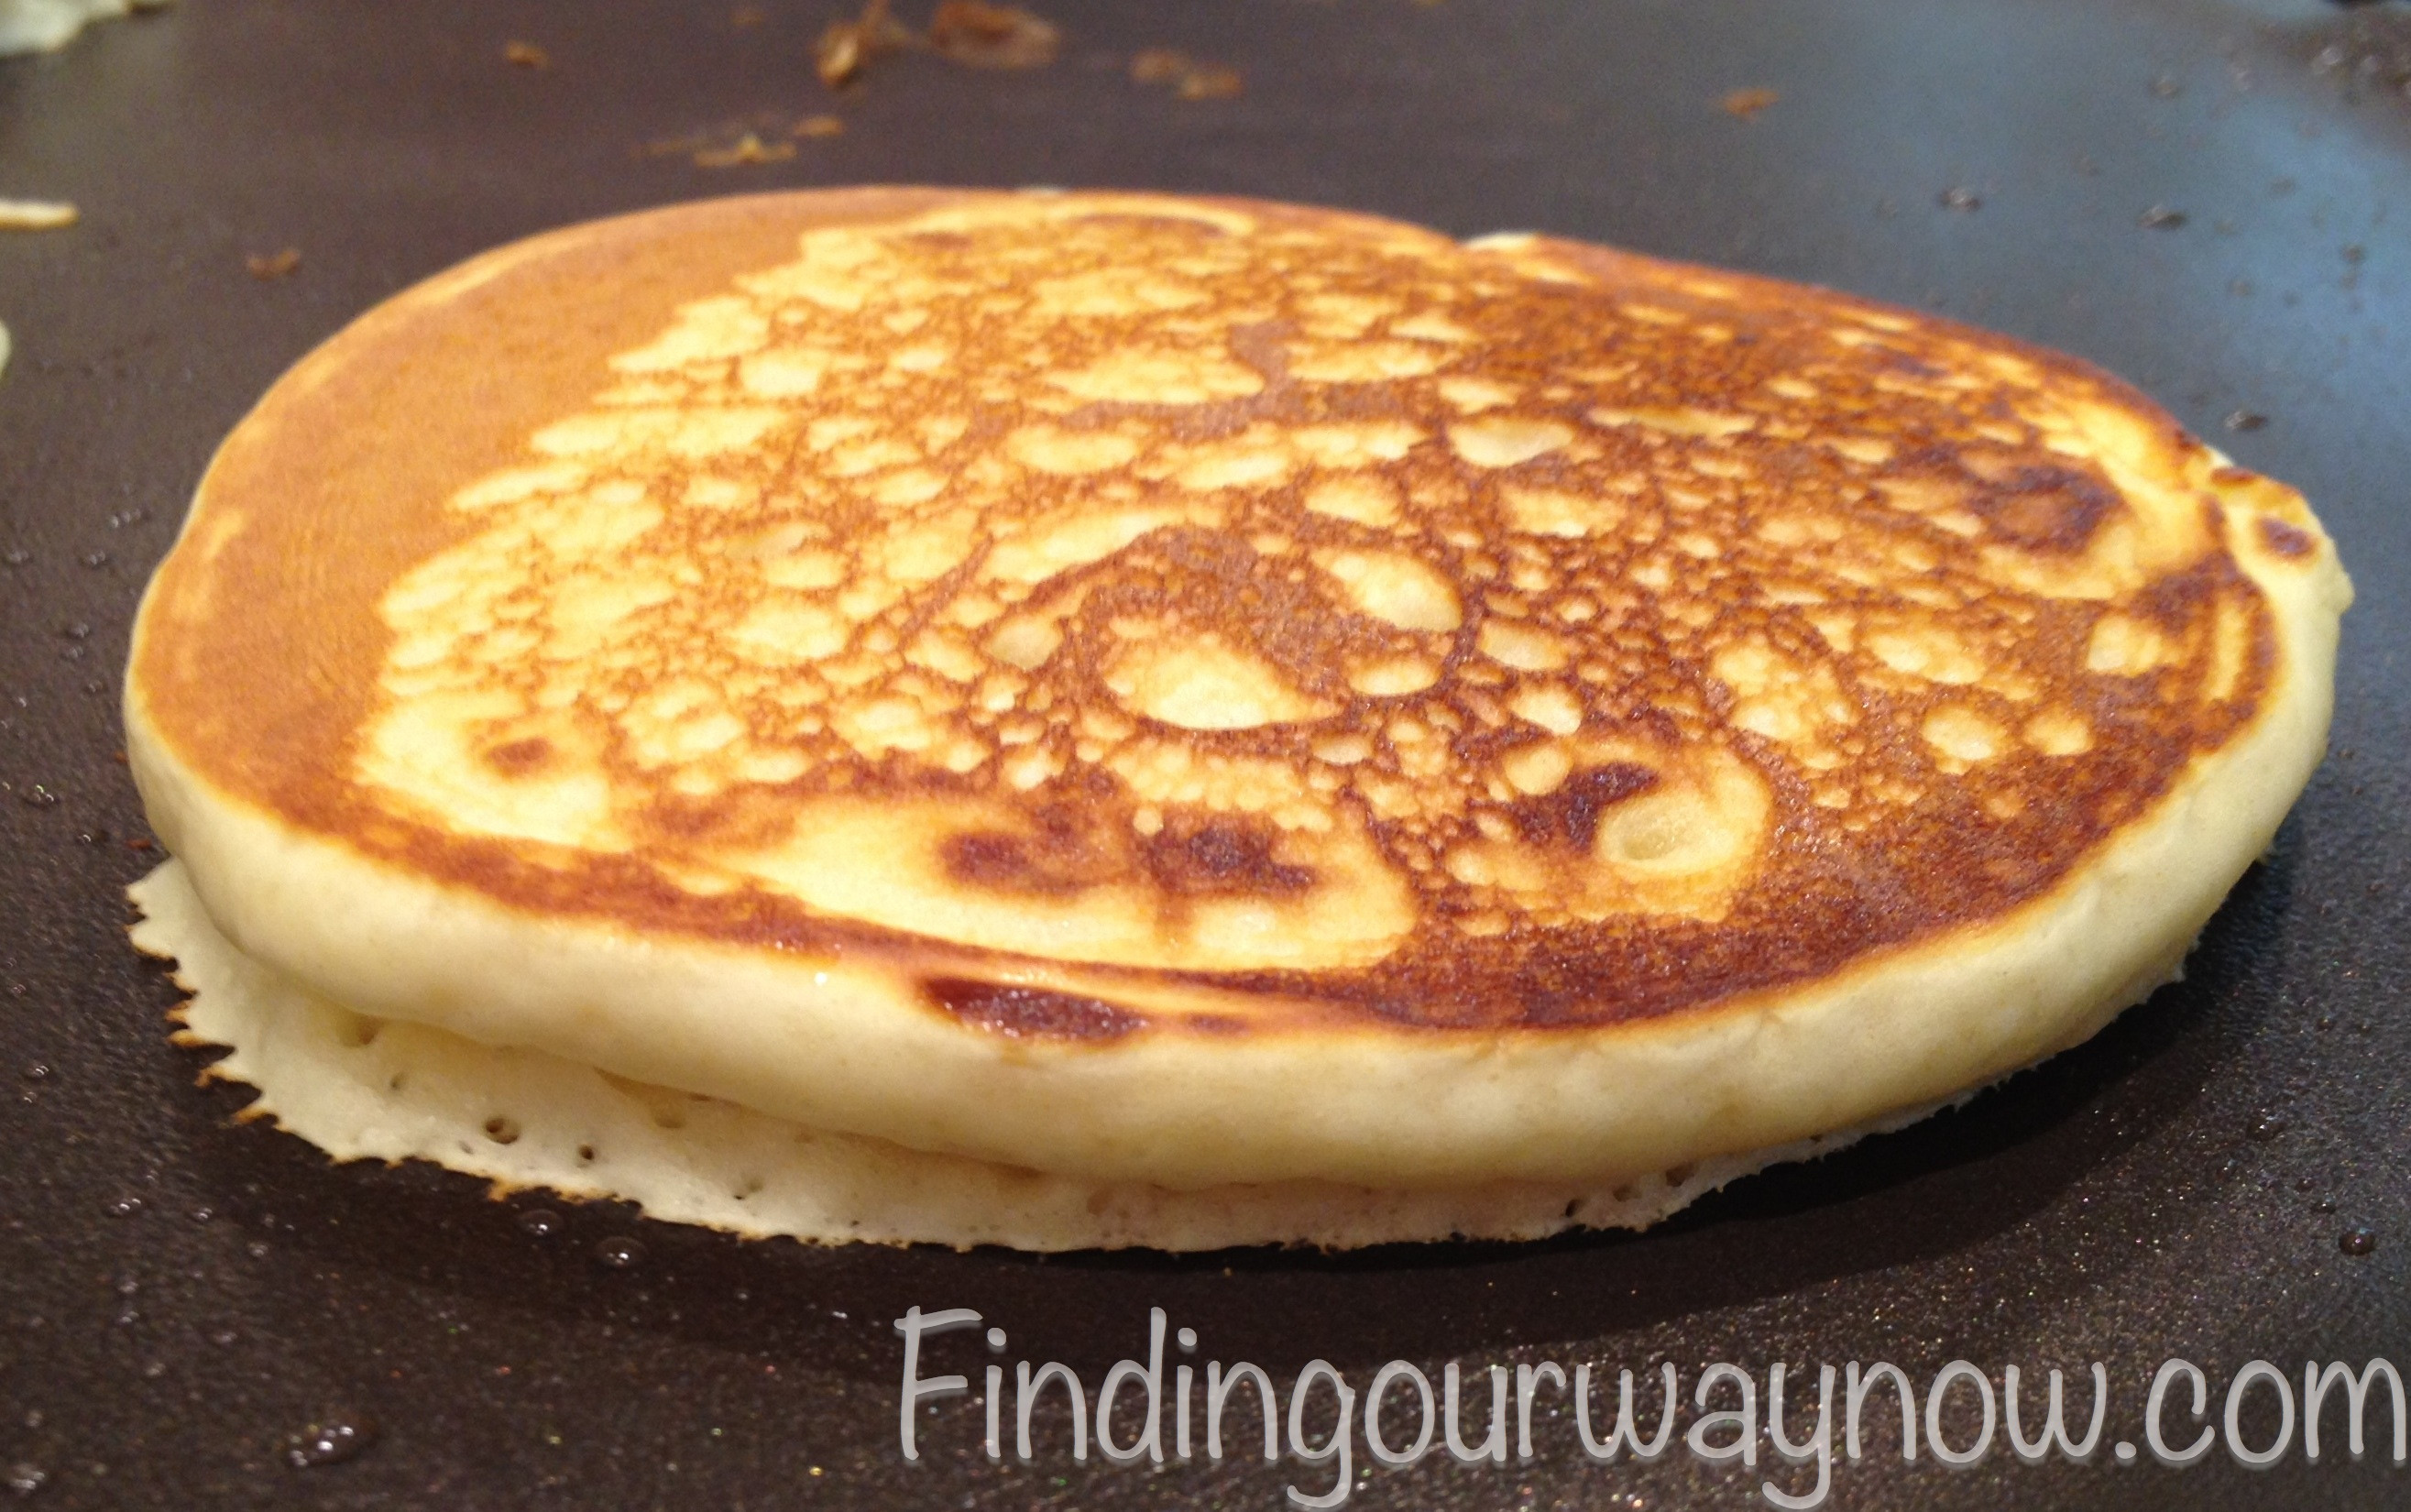 Homemade Buttermilk Pancakes  Homemade Buttermilk Pancakes Recipe Finding Our Way Now